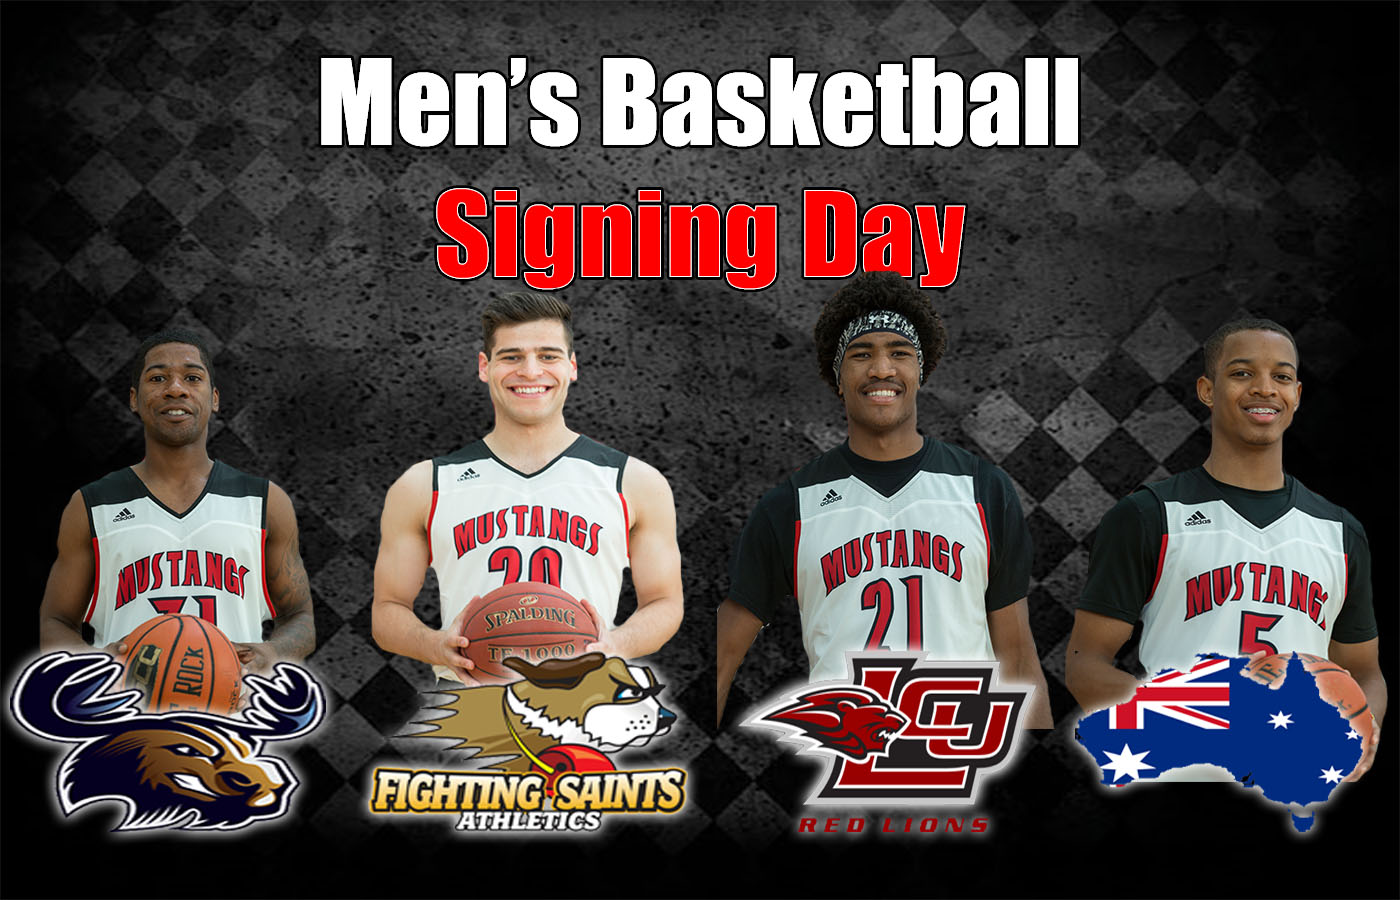 Men's Basketball Signing Day